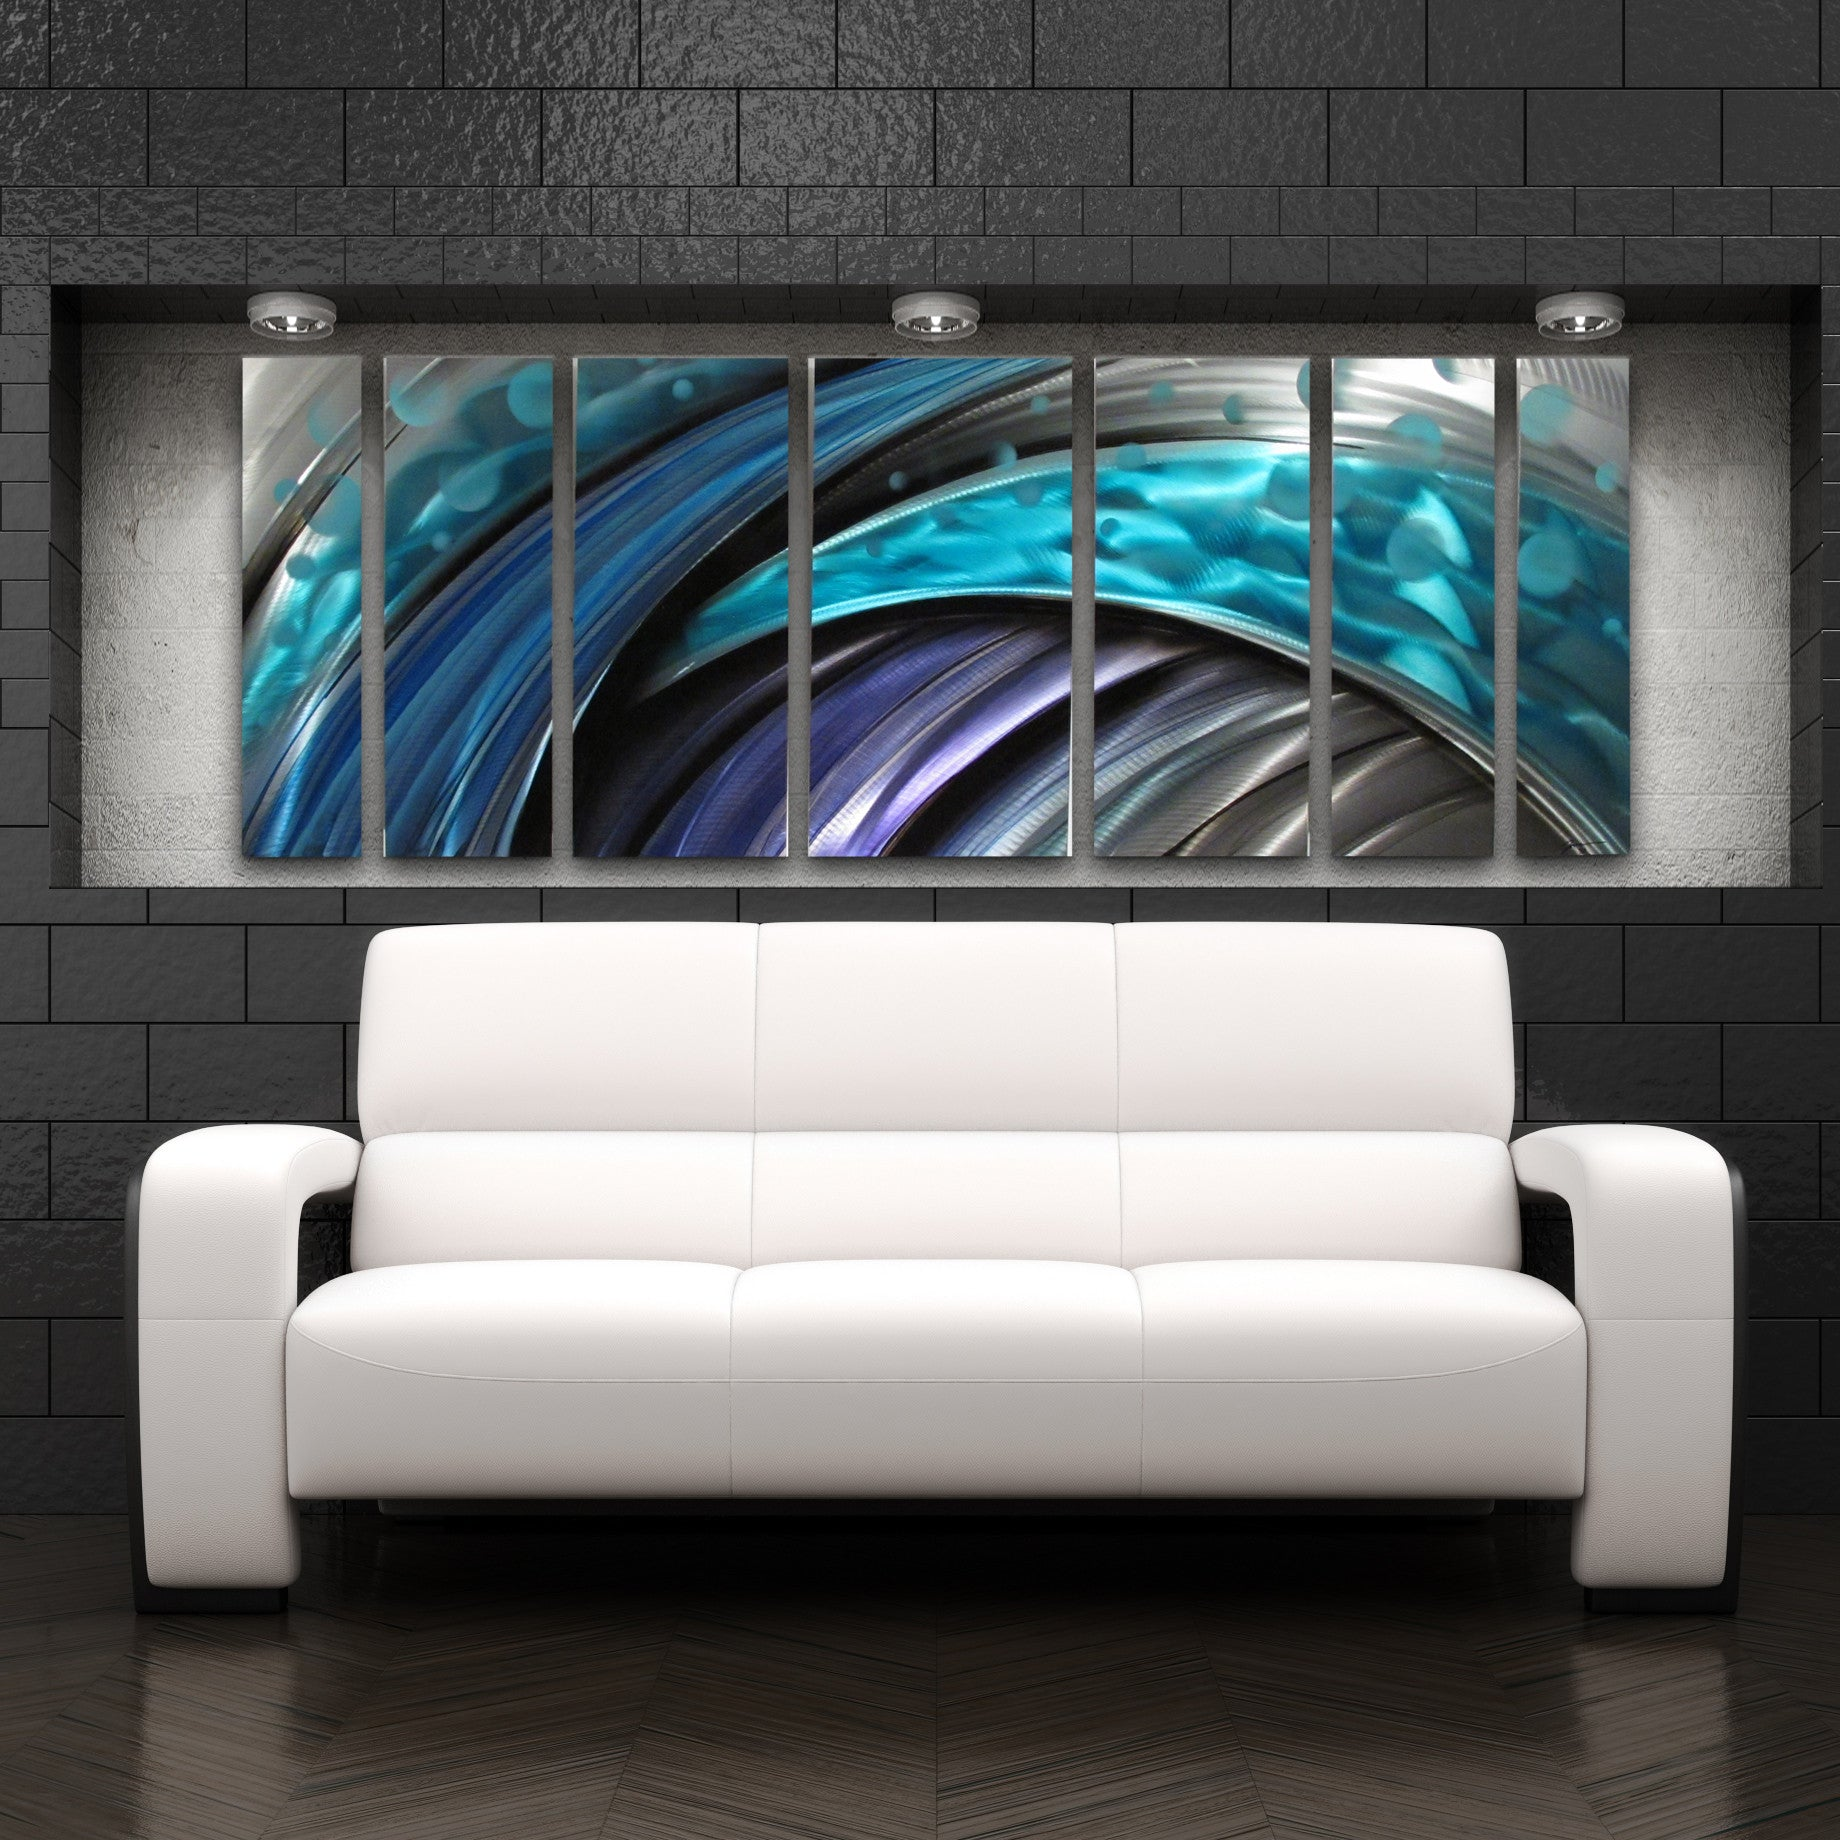 Typhoon large modern abstract metal wall art sculpture for Contemporary wall mural